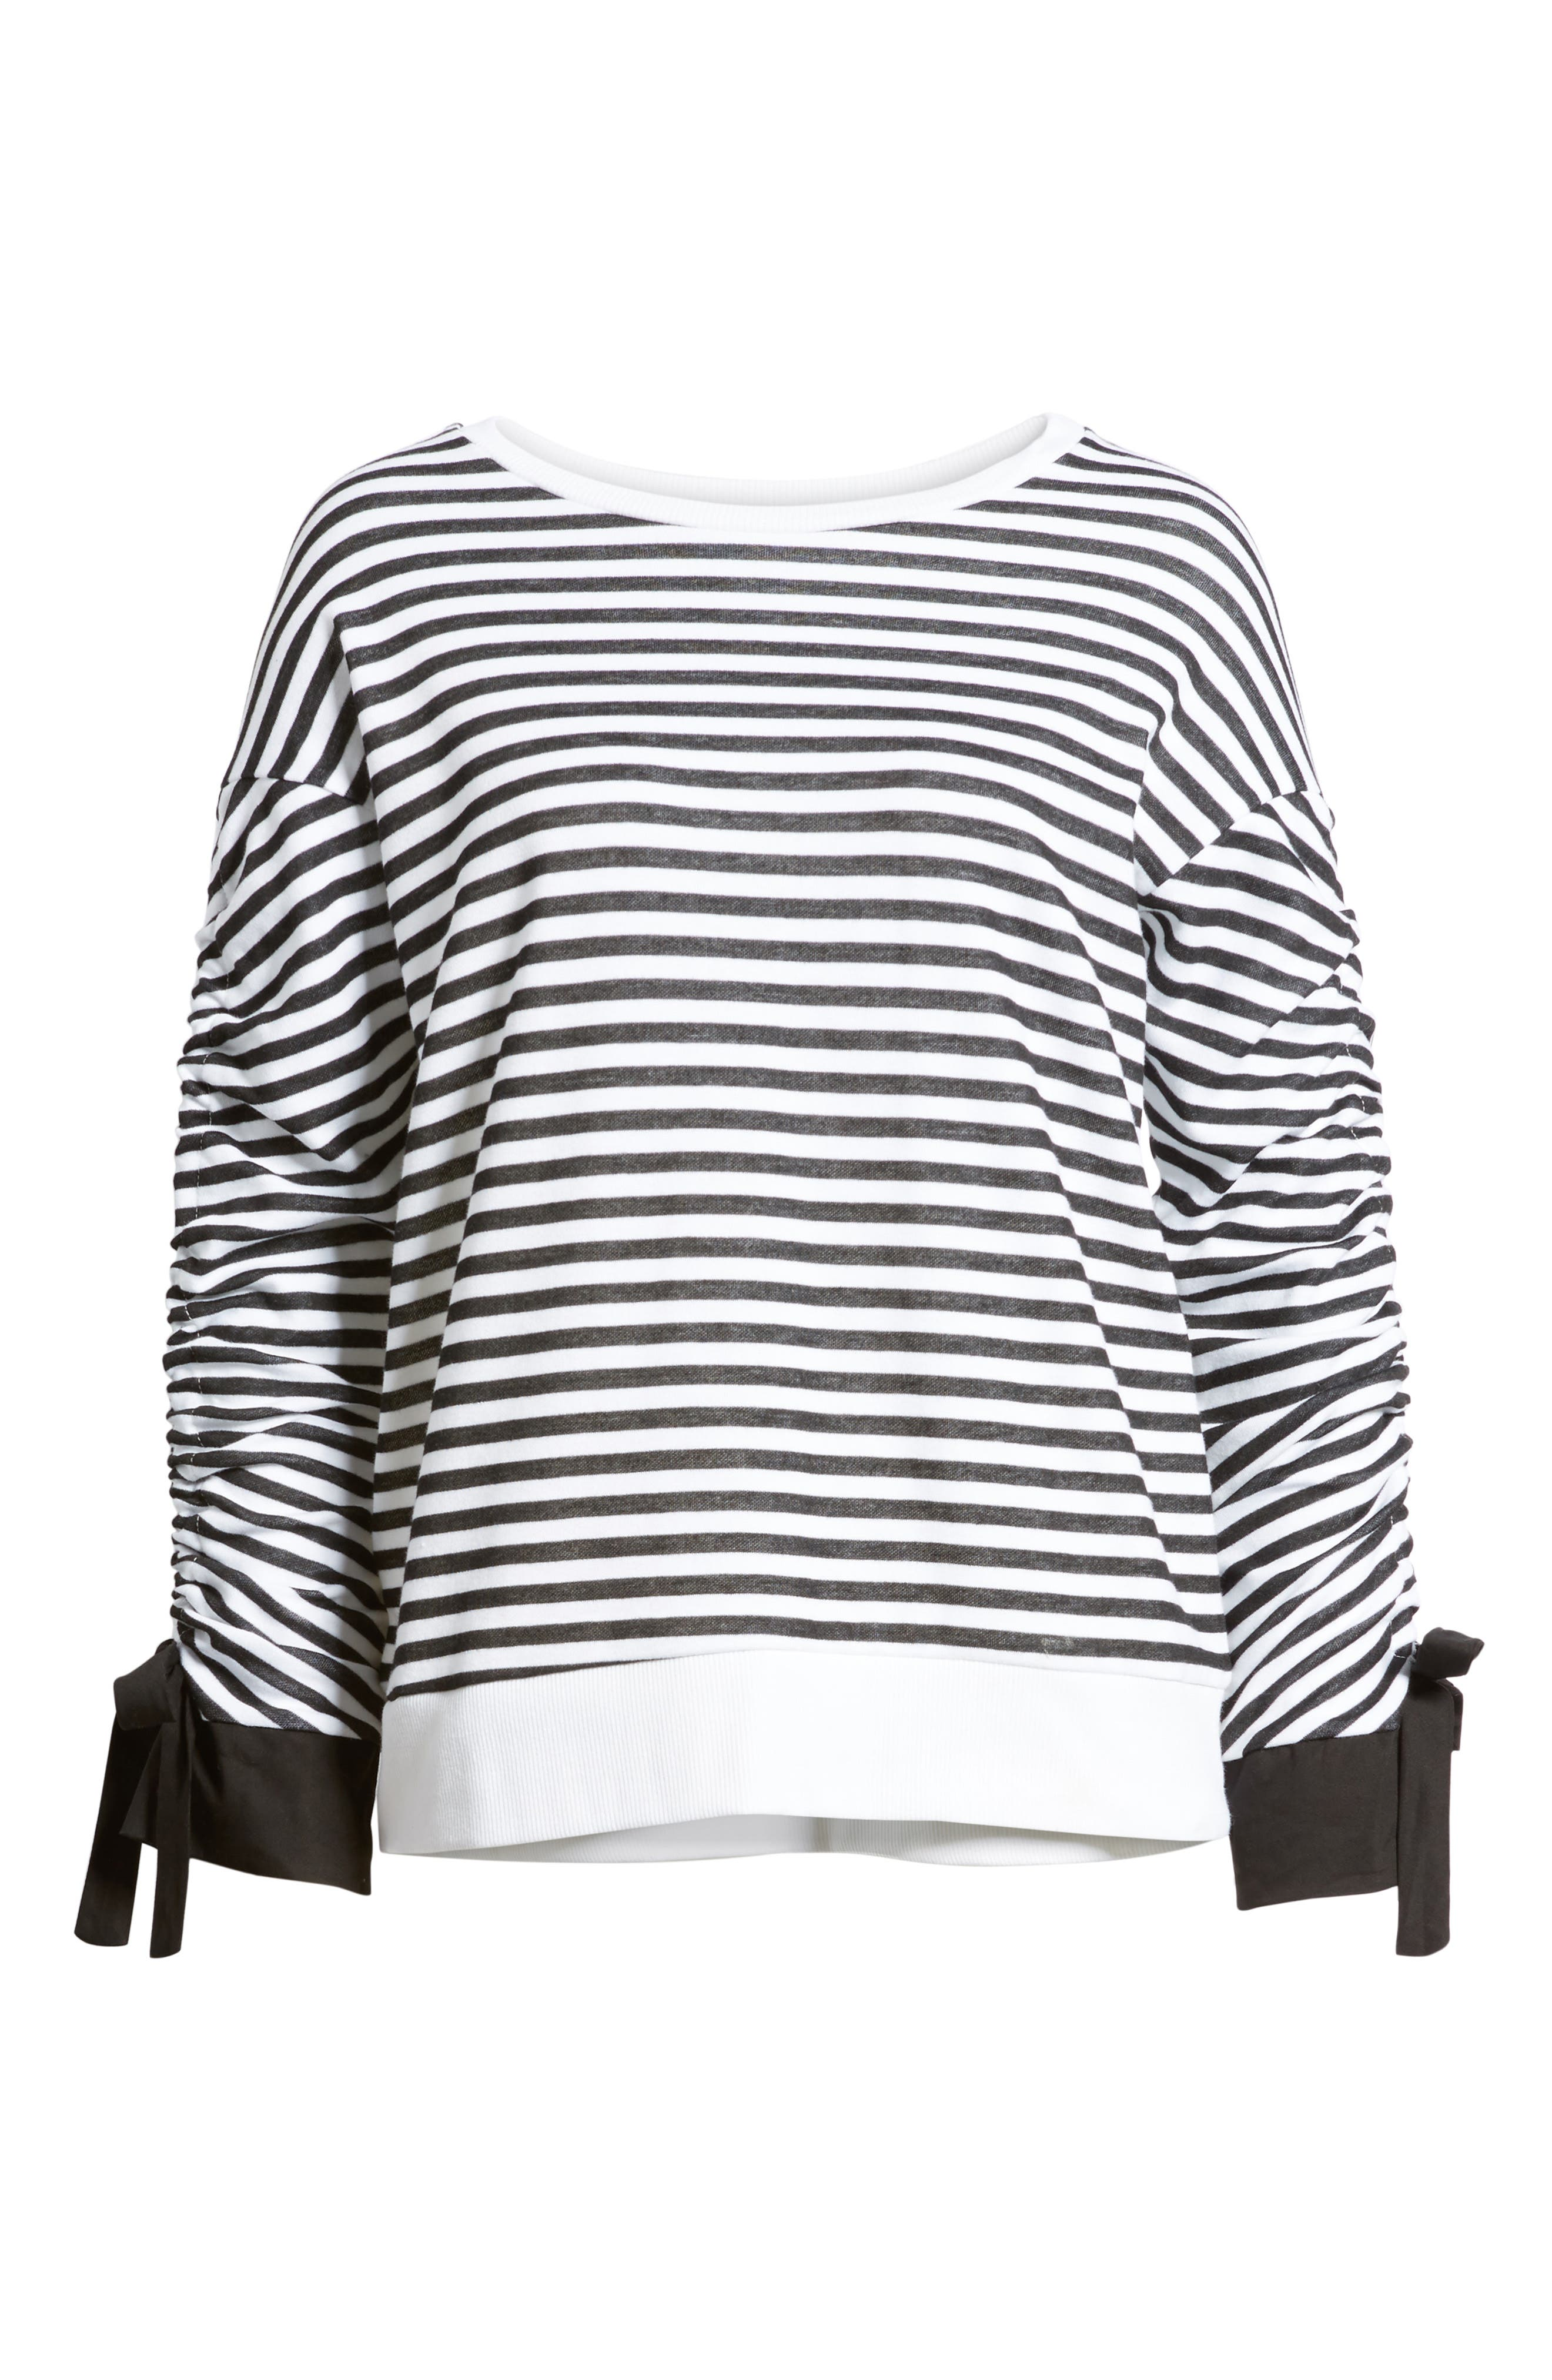 Ruched Sleeve Poplin Trim Sweatshirt,                             Alternate thumbnail 6, color,                             Black- White Stripe